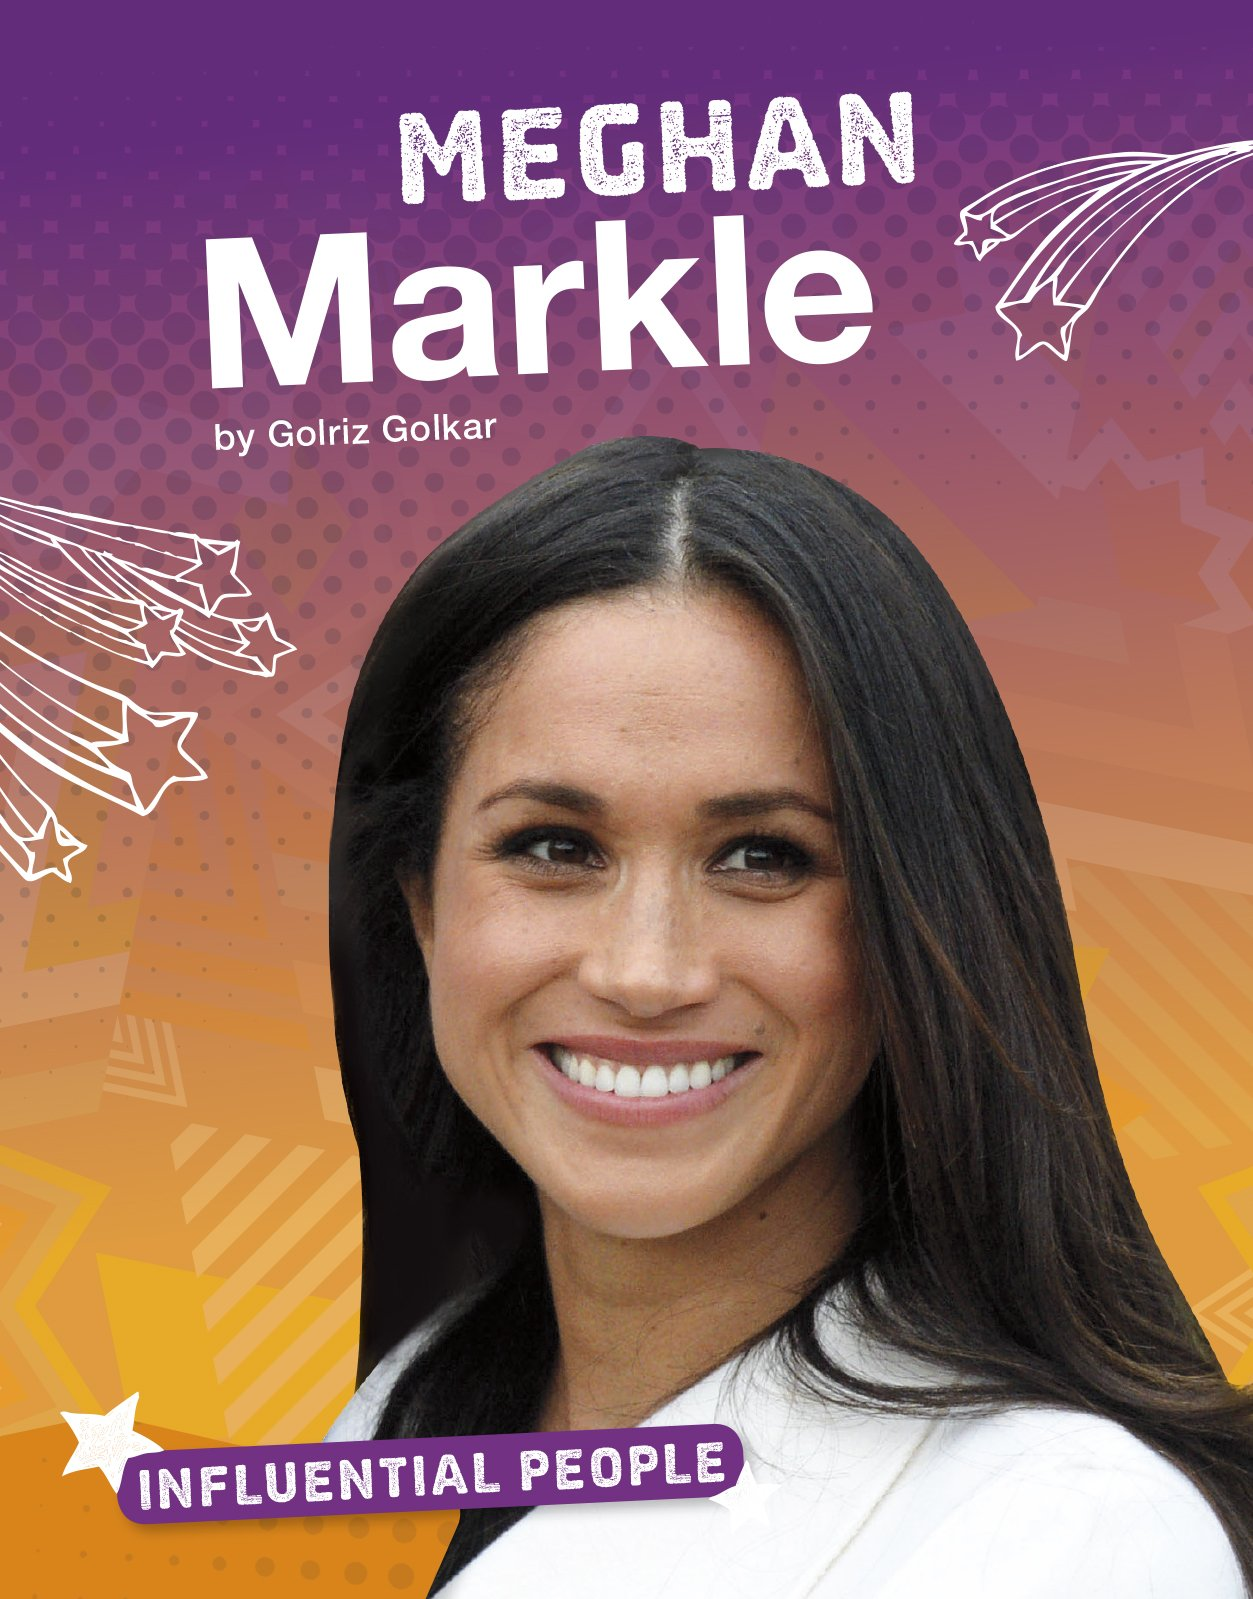 Meghan Markle (Influential People)